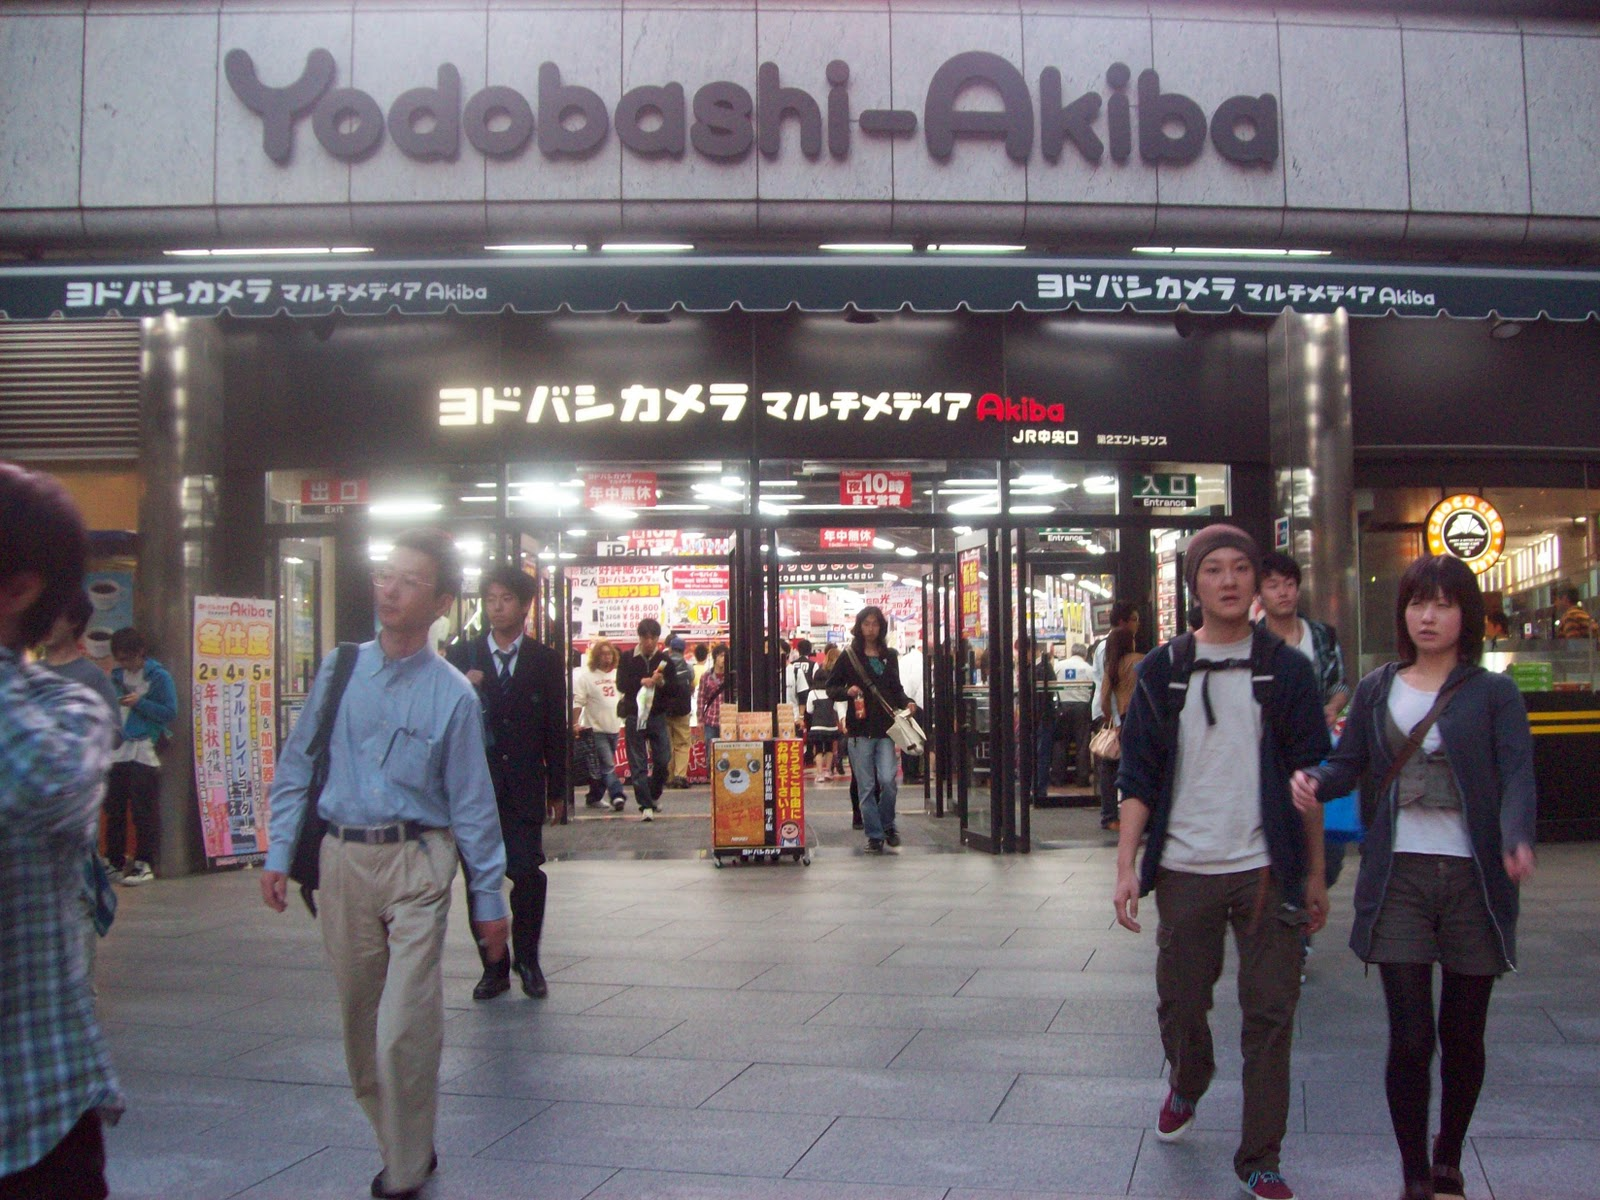 kumpulan boneka dan gaun-gaun: AKIHABARA : The Biggest Electric Town in Japan..... AKIHABARA ...